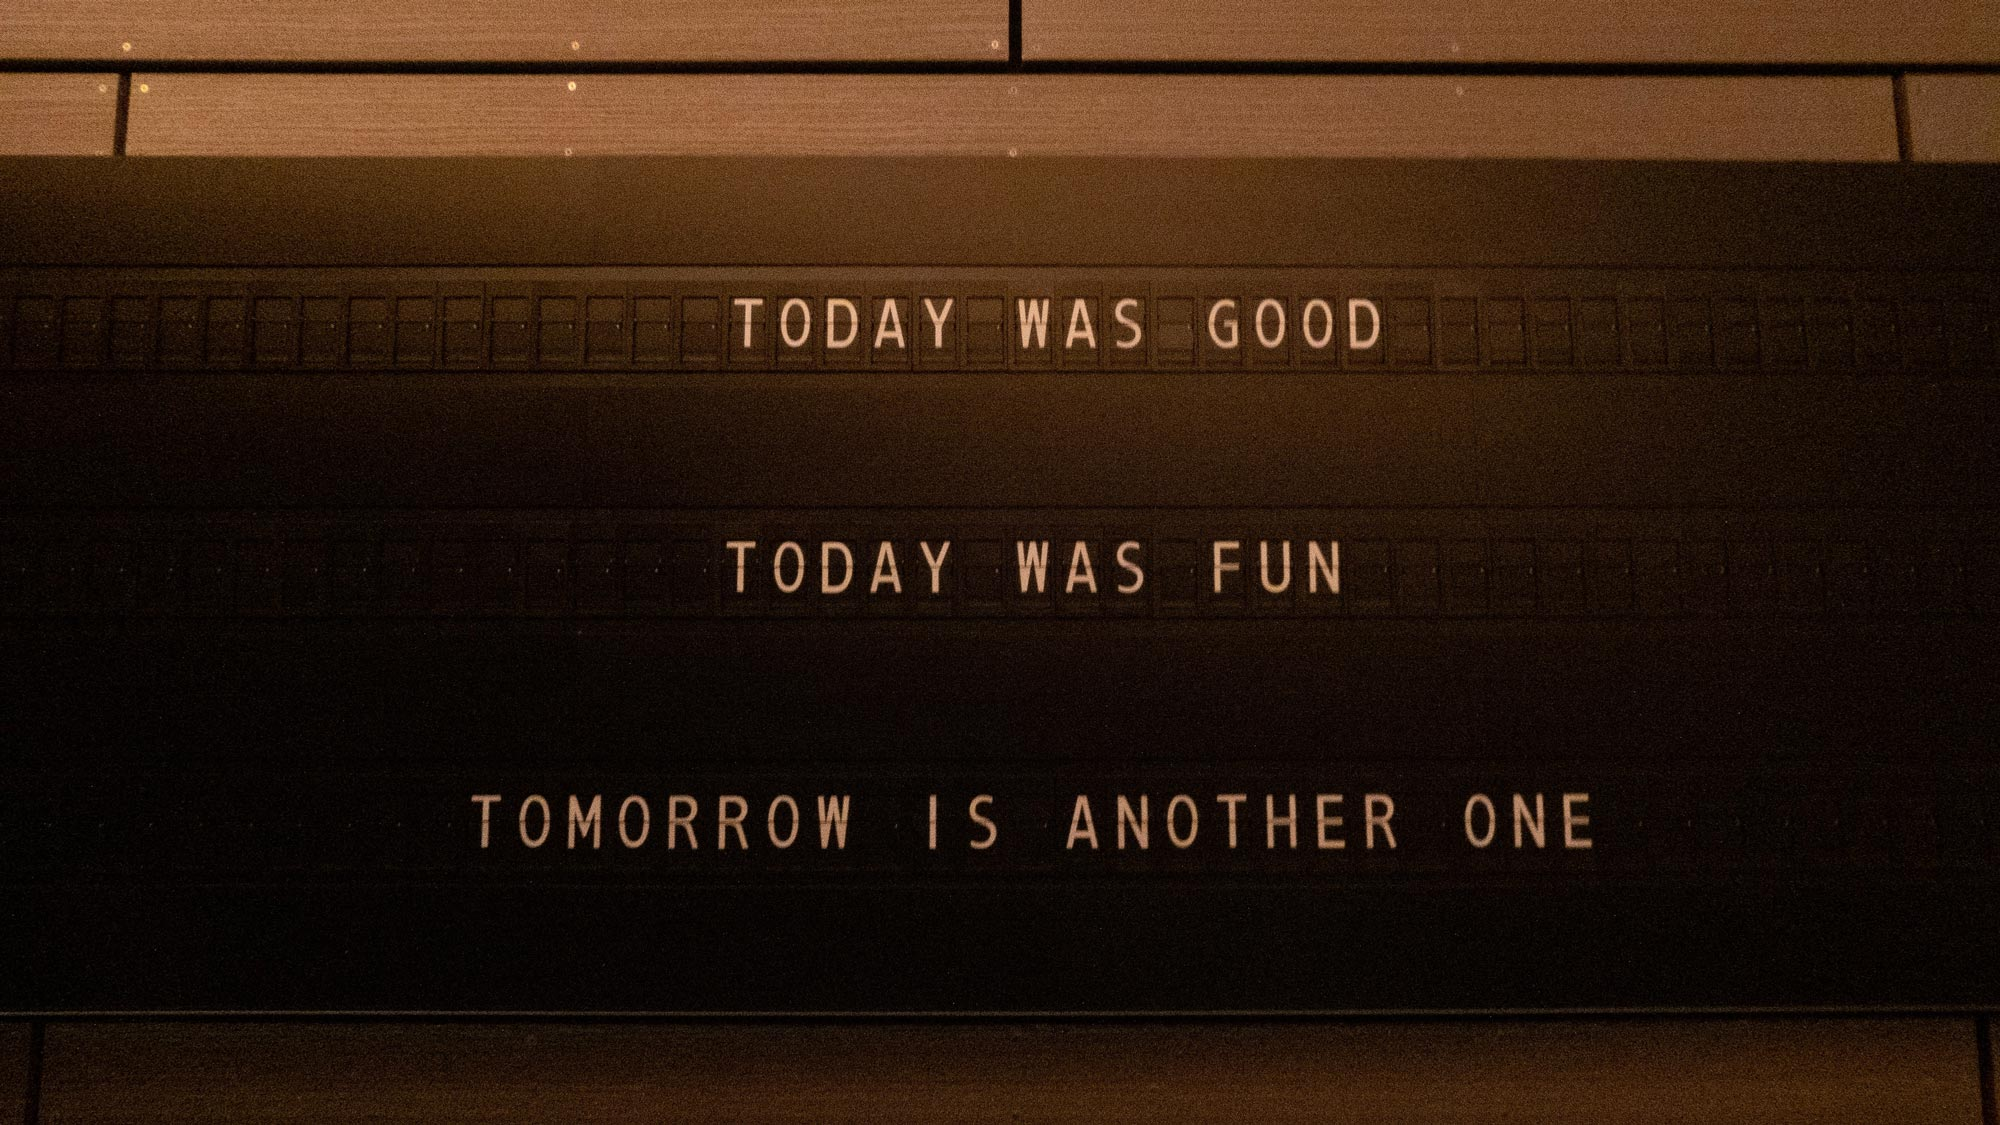 Today was good, today was fun, Tomorrow is another one. Photo by @jannerboy62/Nick Fewings on Unsplash